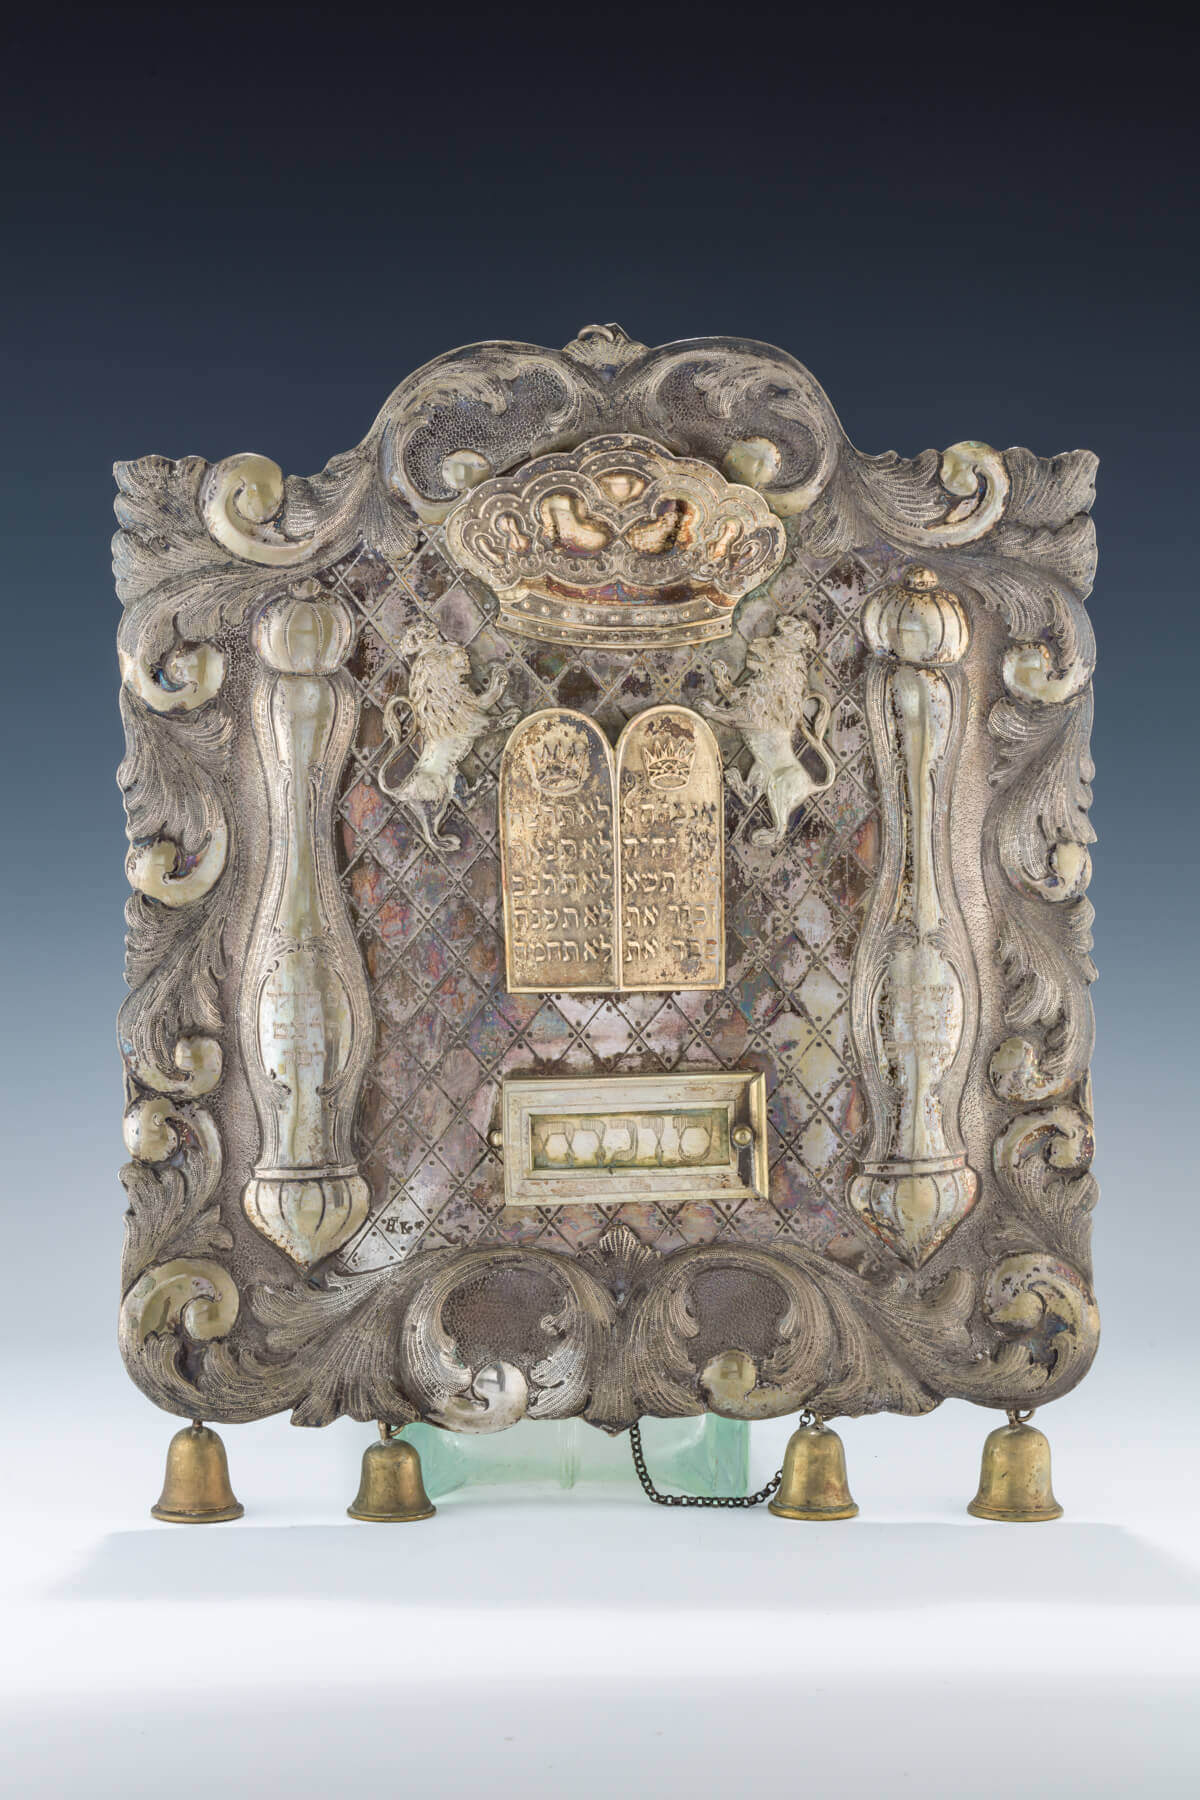 103. A LARGE SILVER TORAH SHIELD